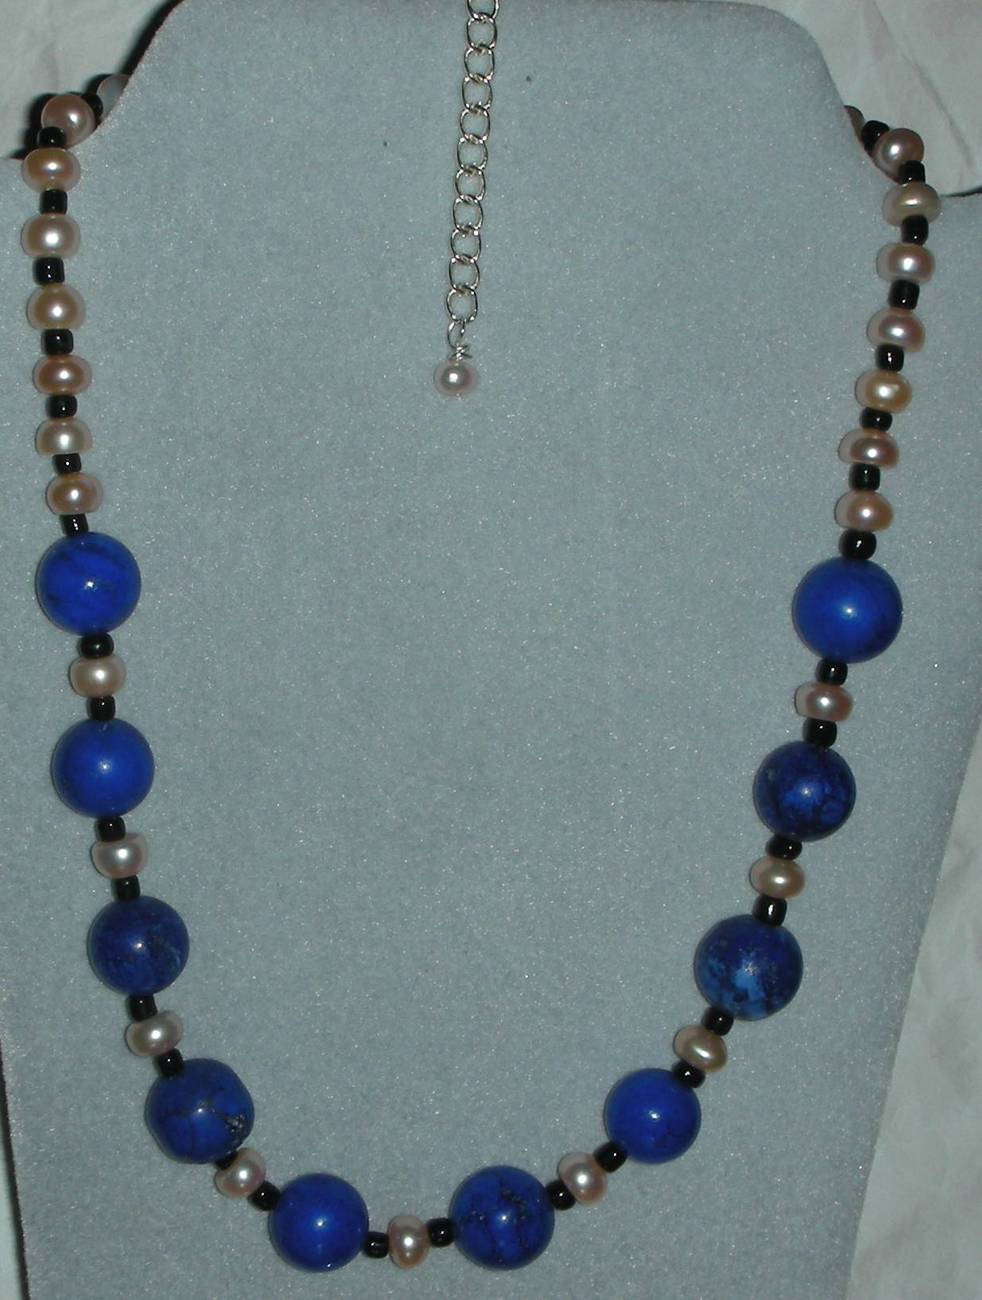 STUNNING TURQUOISE STONE AND PEARLS NECKLACE